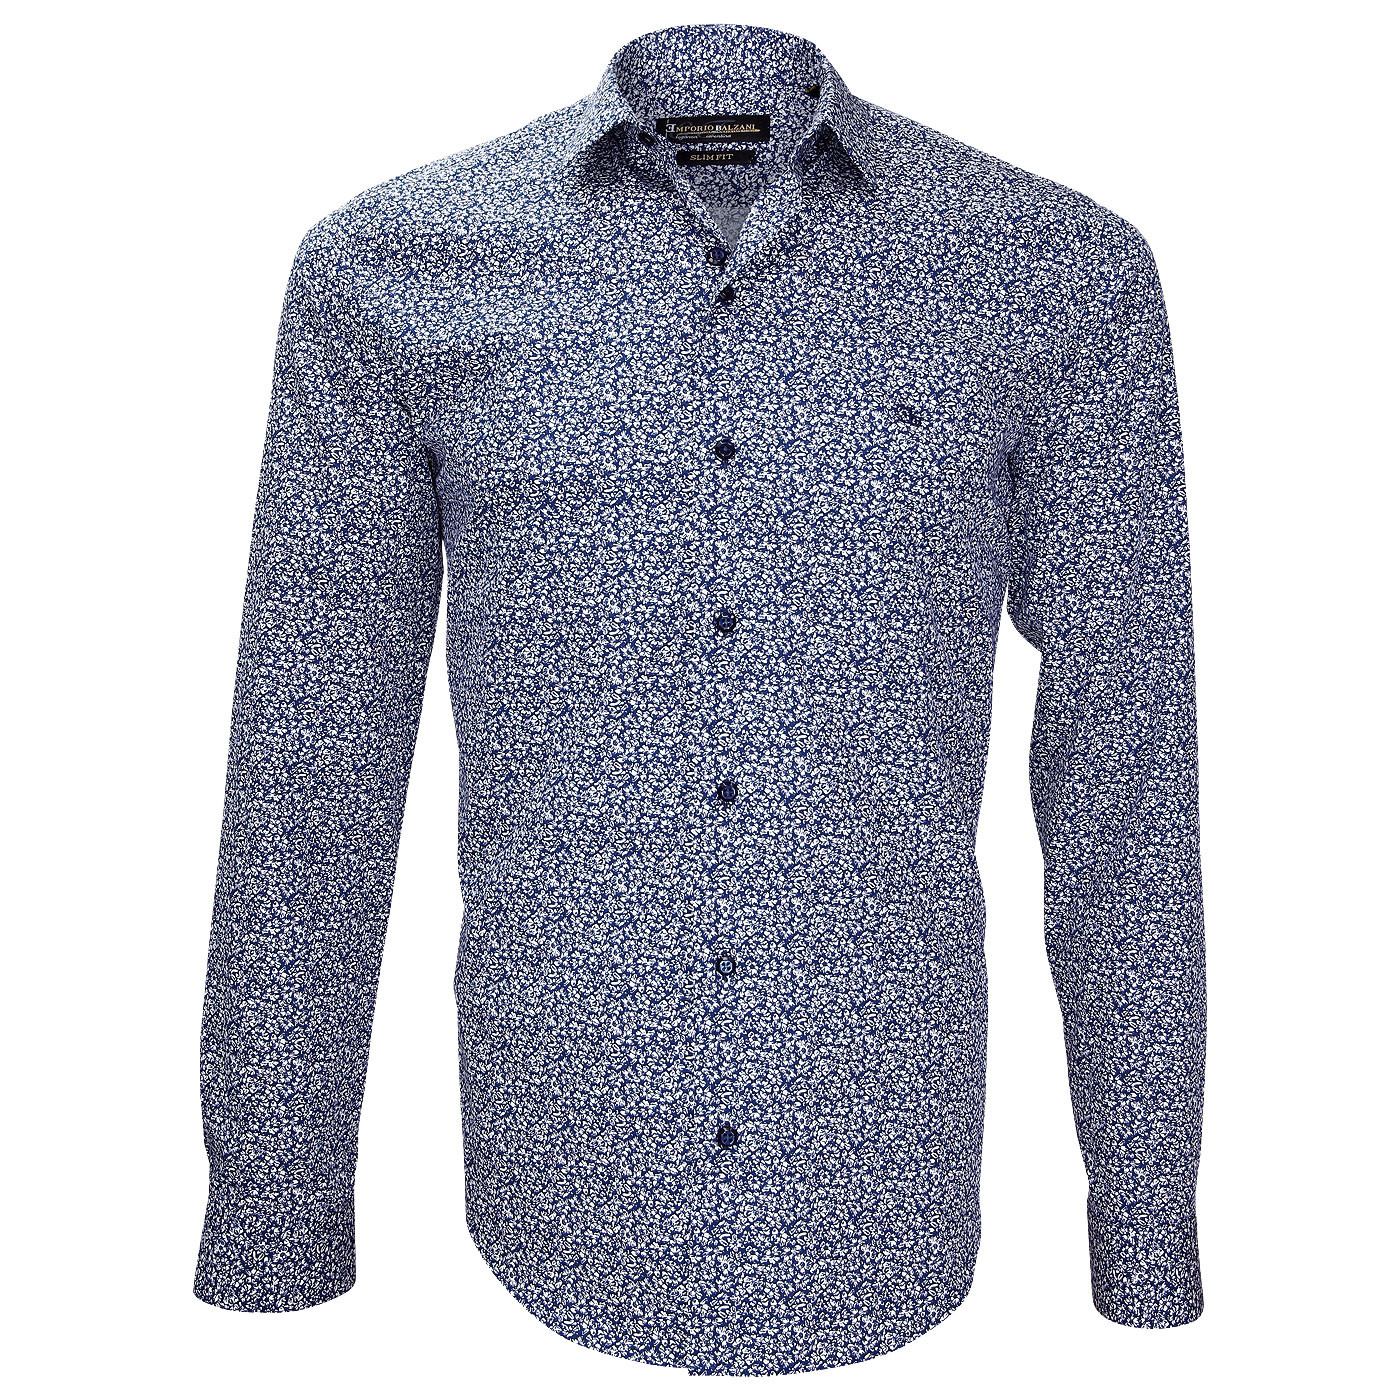 Camisa italiana casual